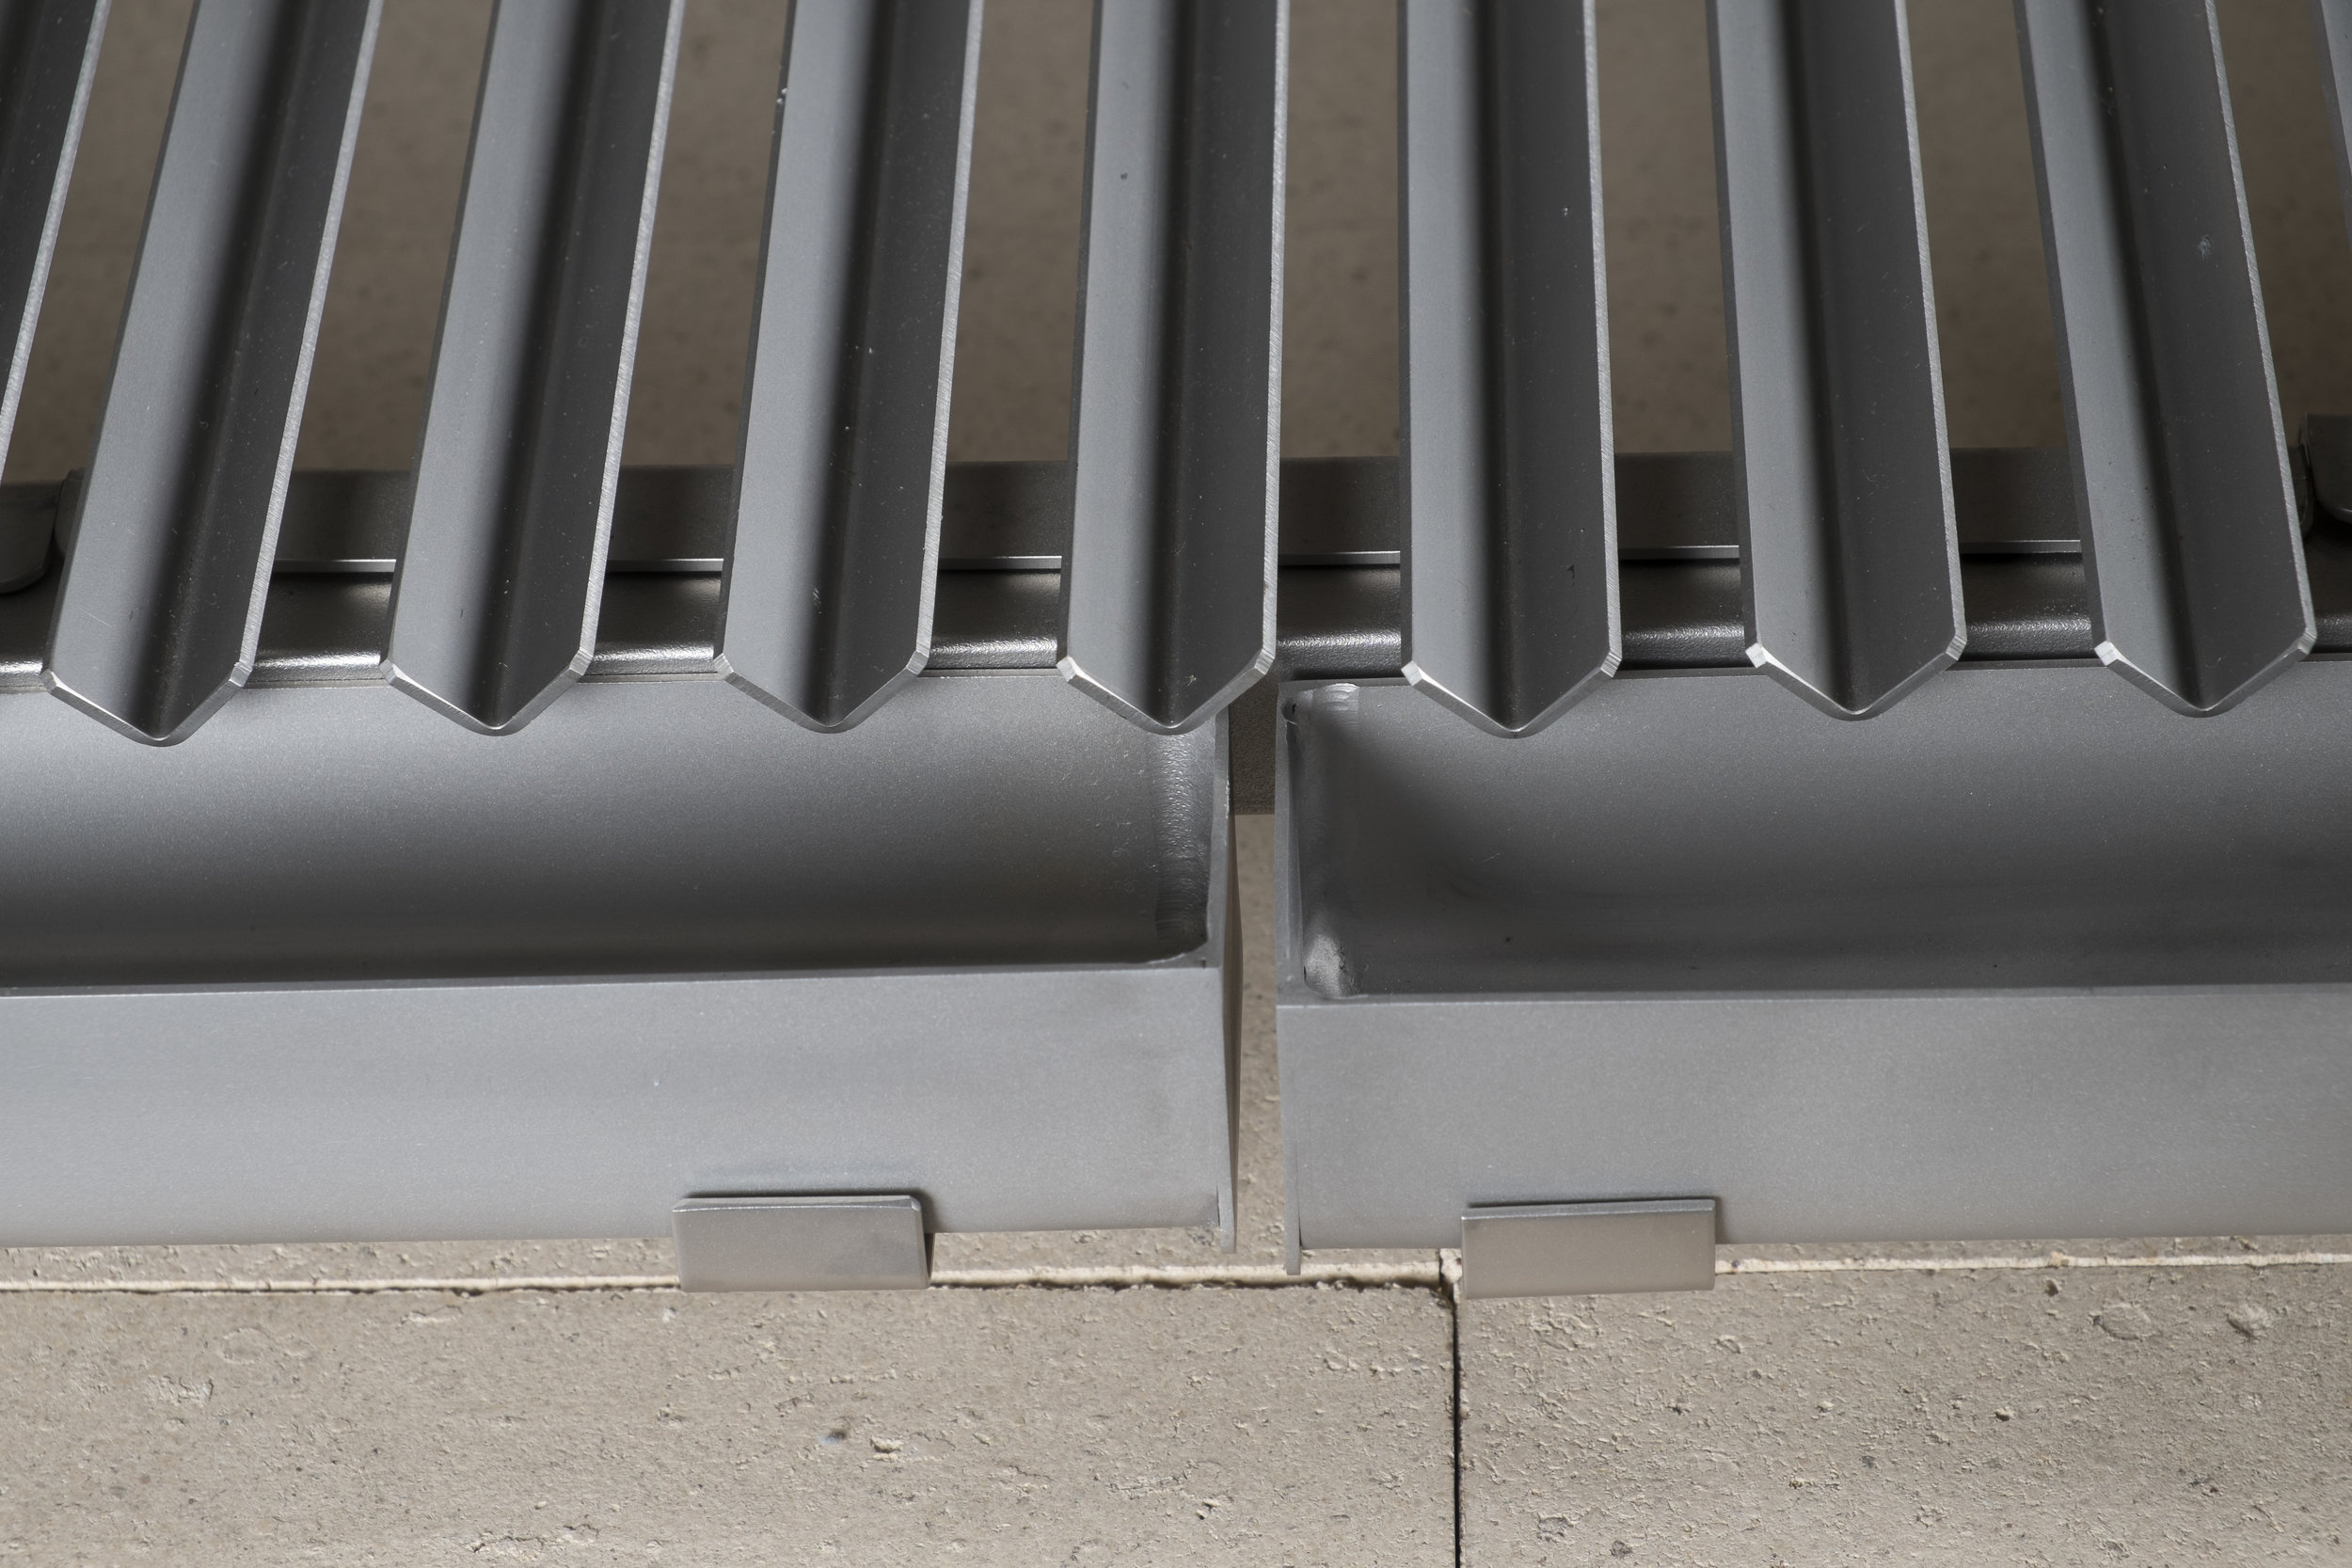 'V' Grooves Funnel Juices and Grease Into Drip Trays